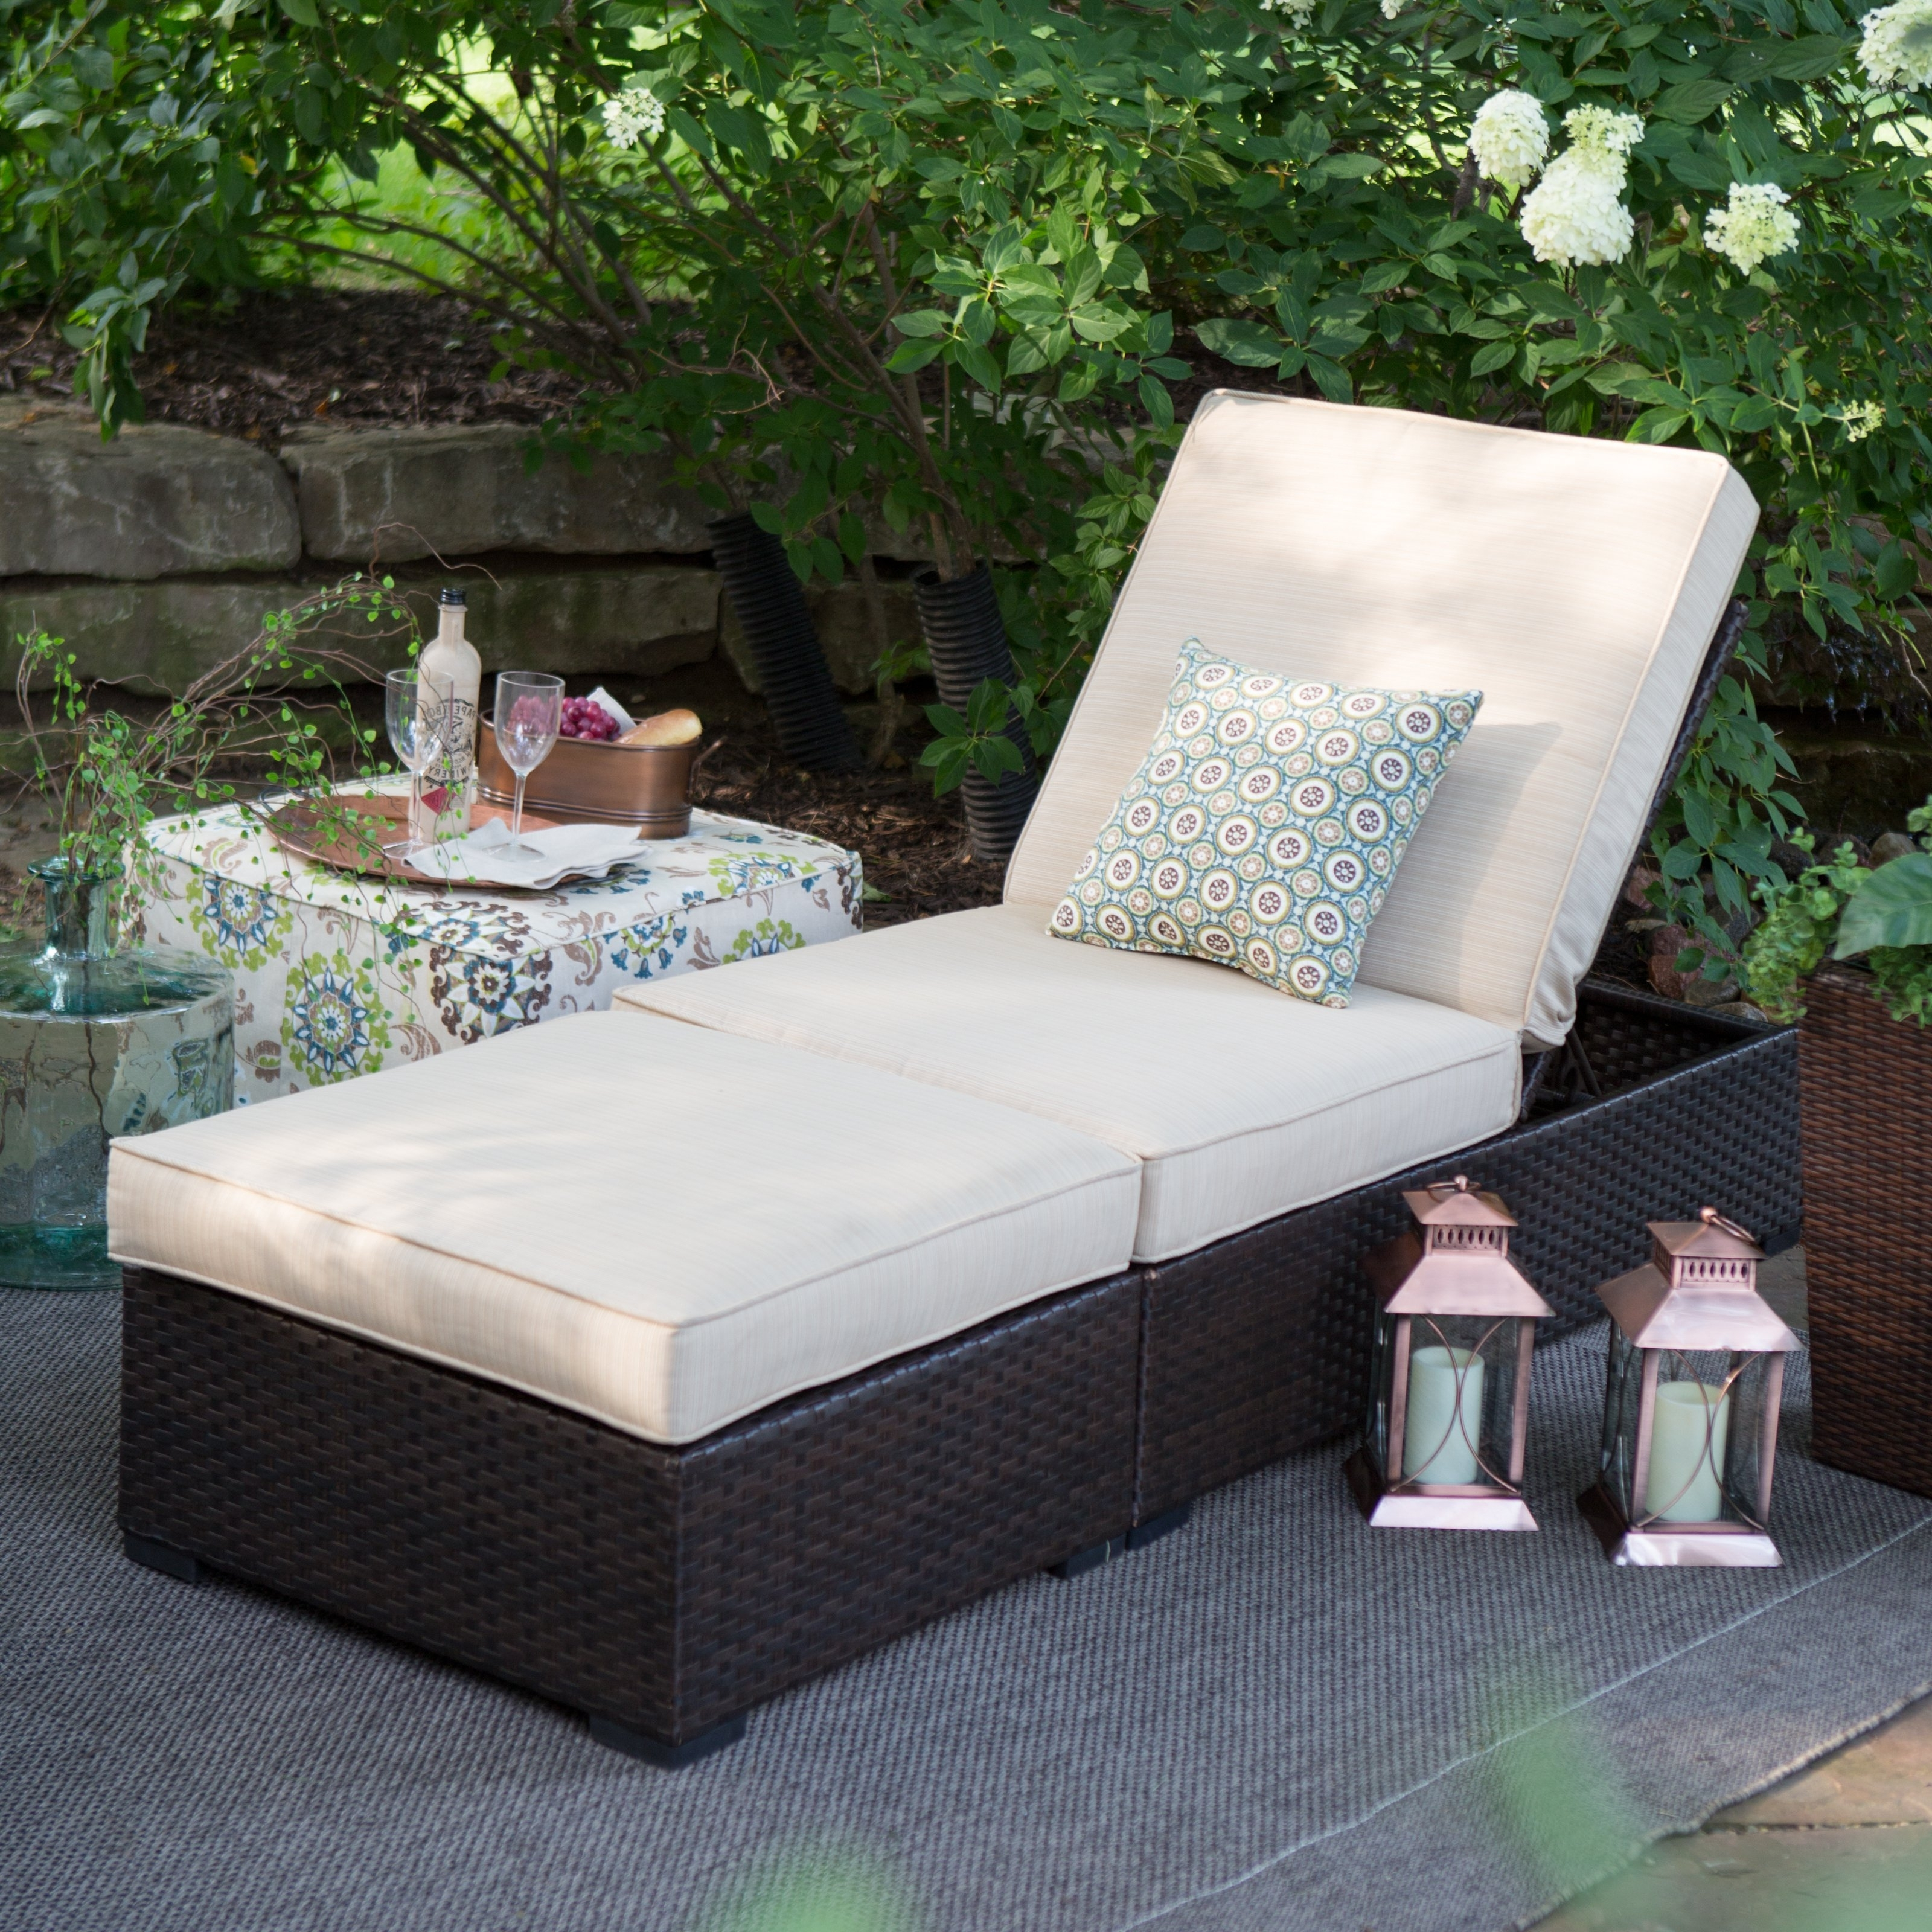 Most Popular Belham Living Marcella Wide Wicker Chaise Lounge With Ottoman For Wicker Chaise Lounge Chairs For Outdoor (View 10 of 15)